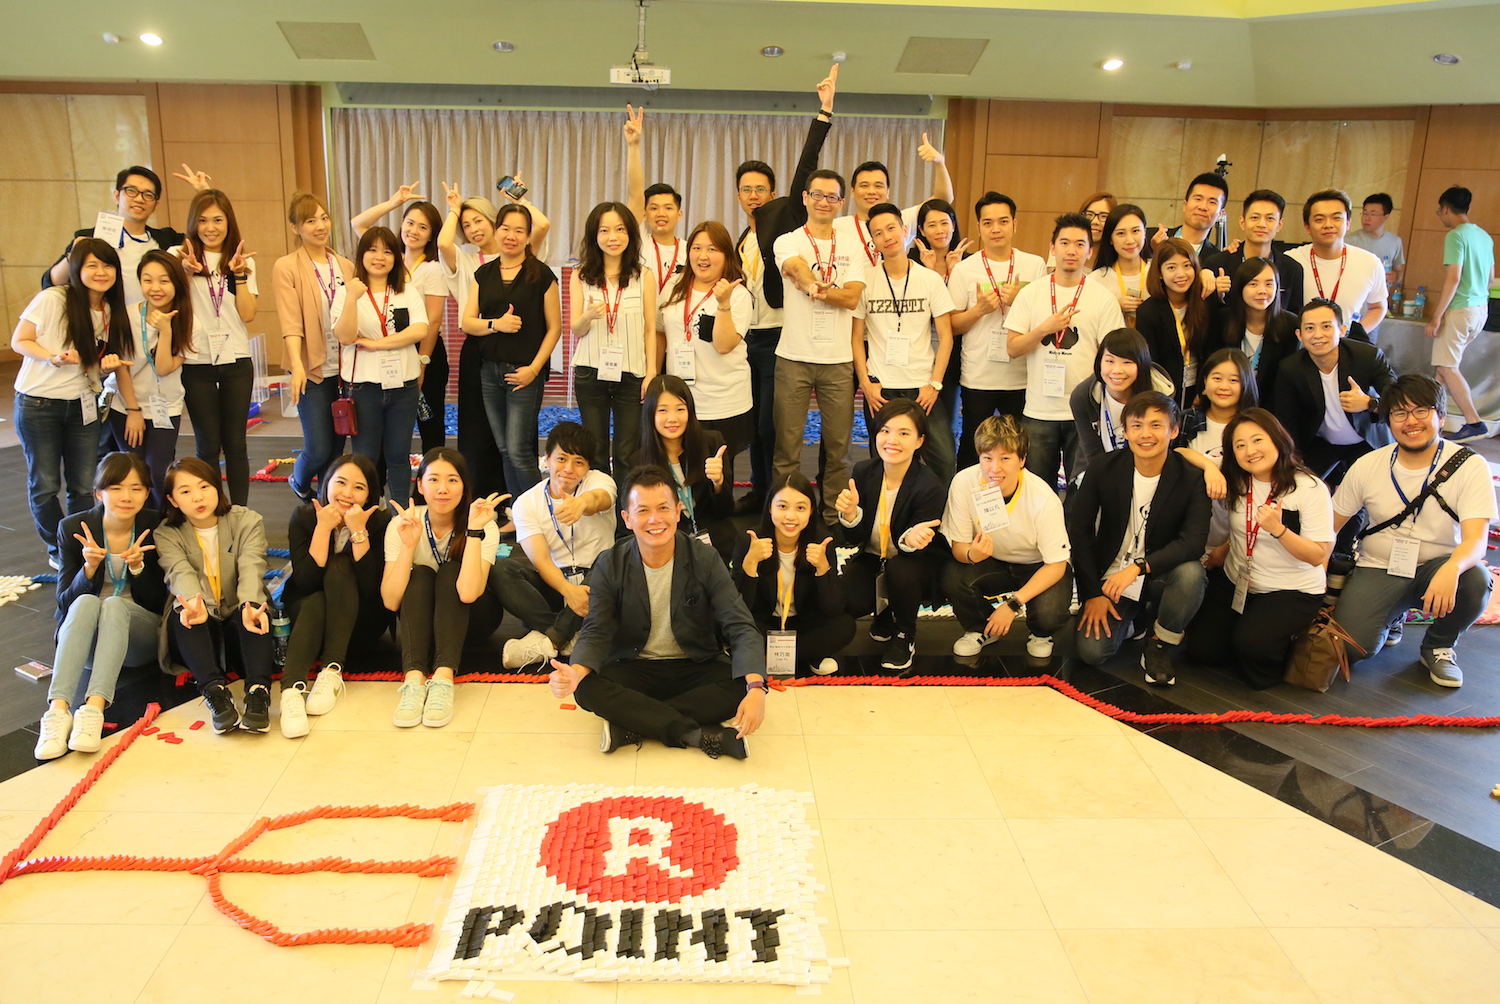 Rakuten celebrates a decade in Taiwan: An interview with Grace Lo, founding member and CEO